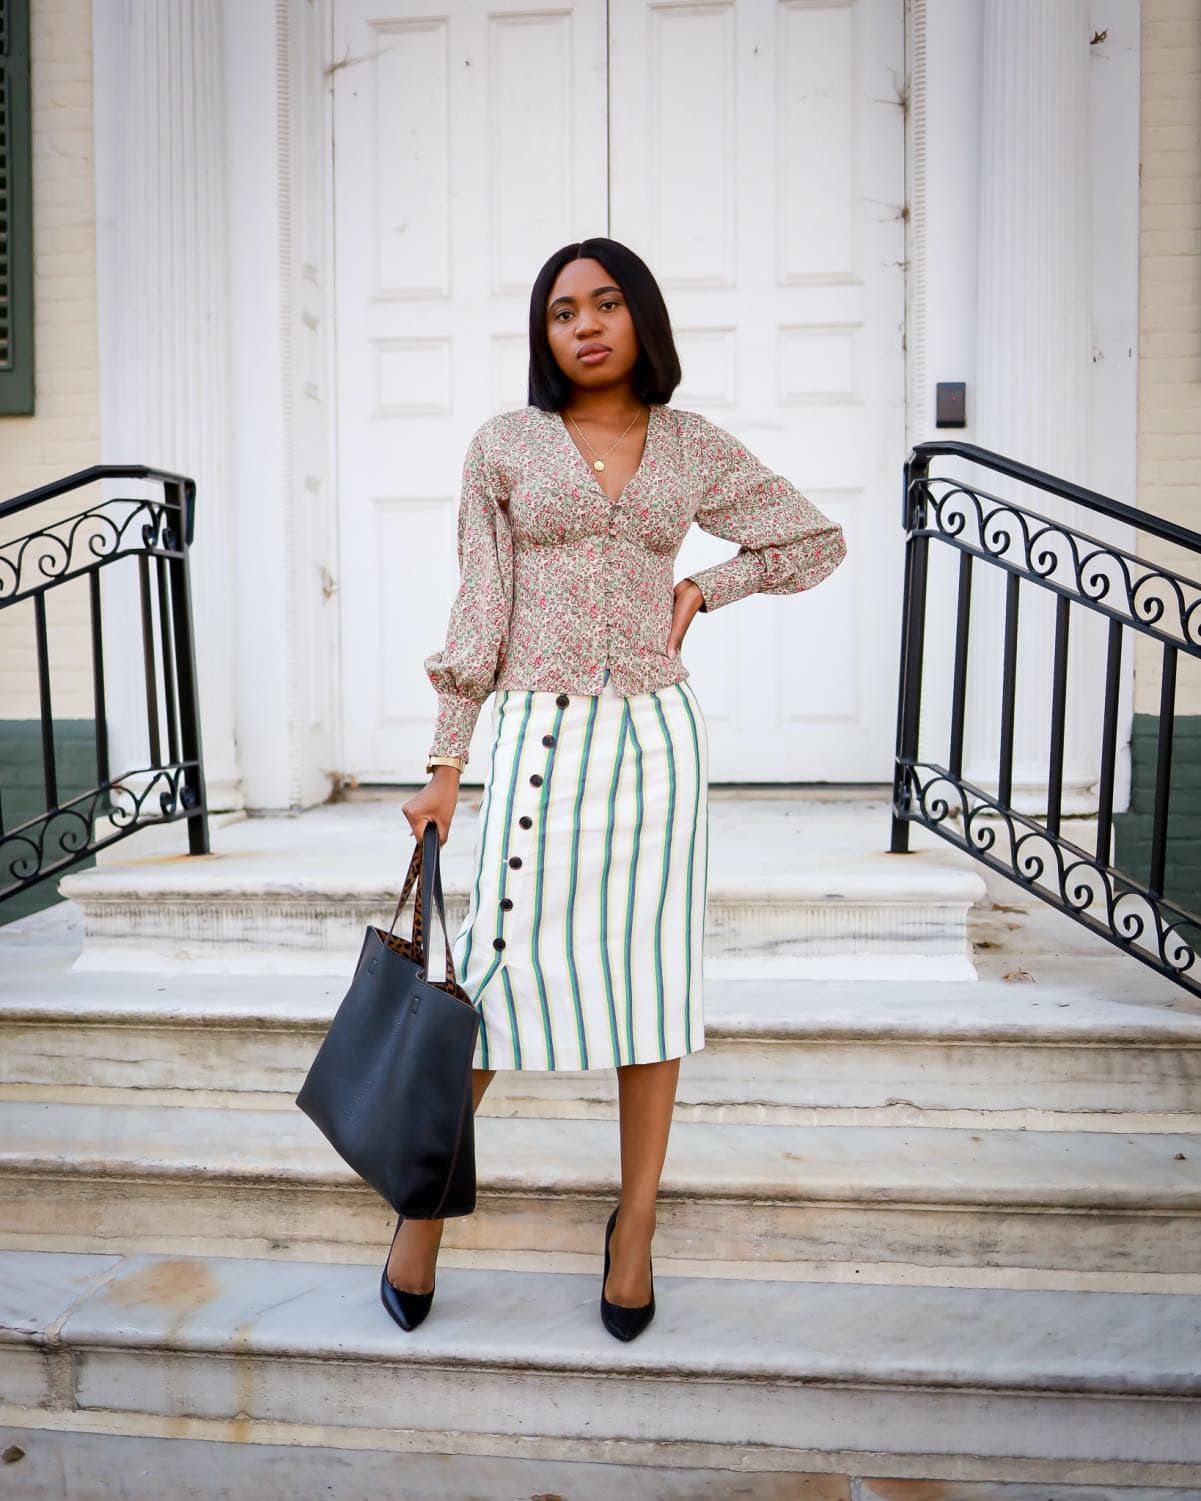 Office style with midi skirt